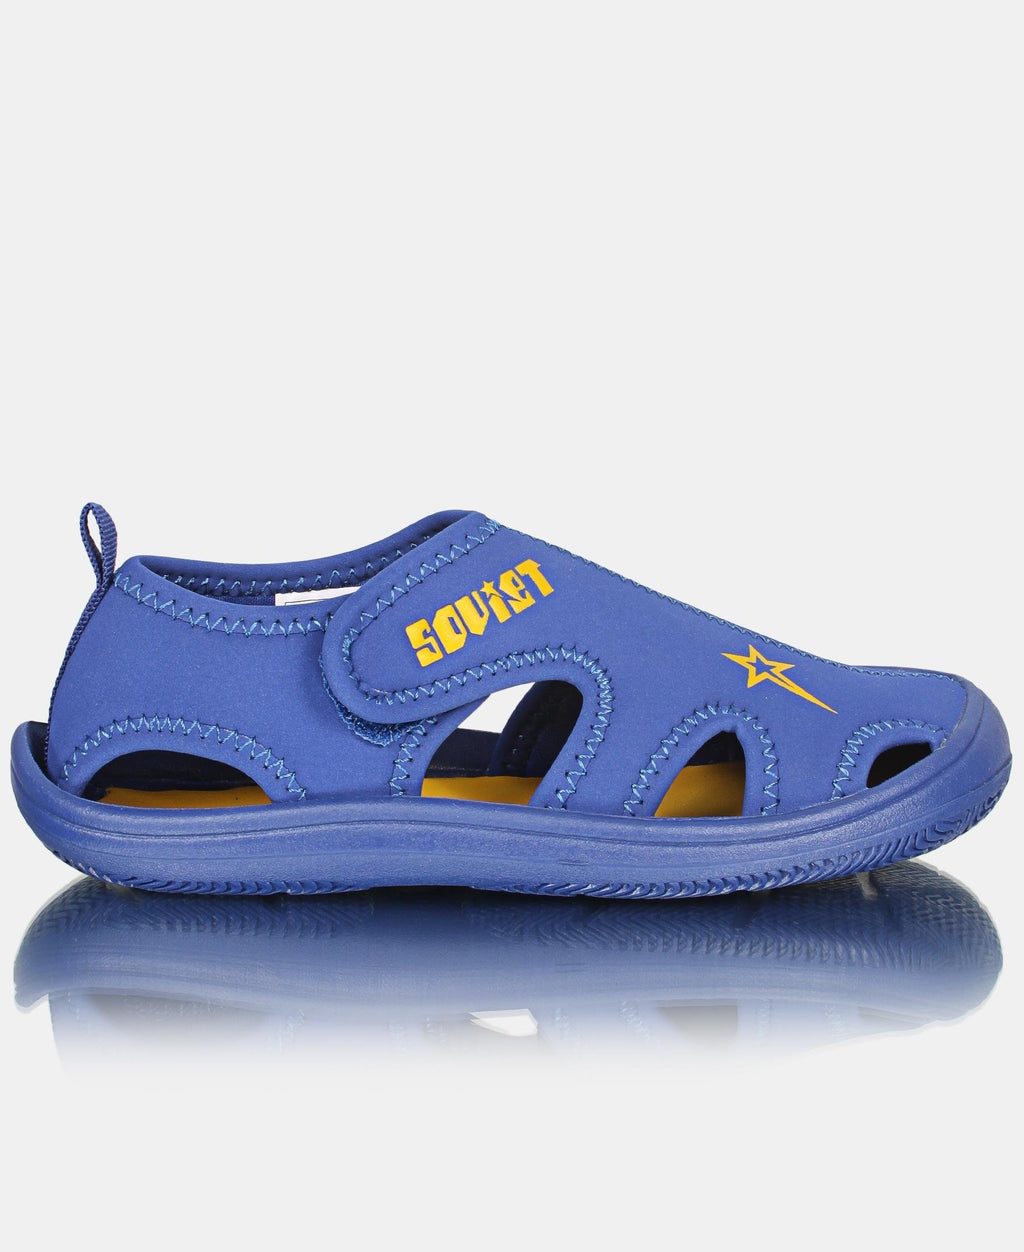 Kids Ramba Sandals - Royal Blue